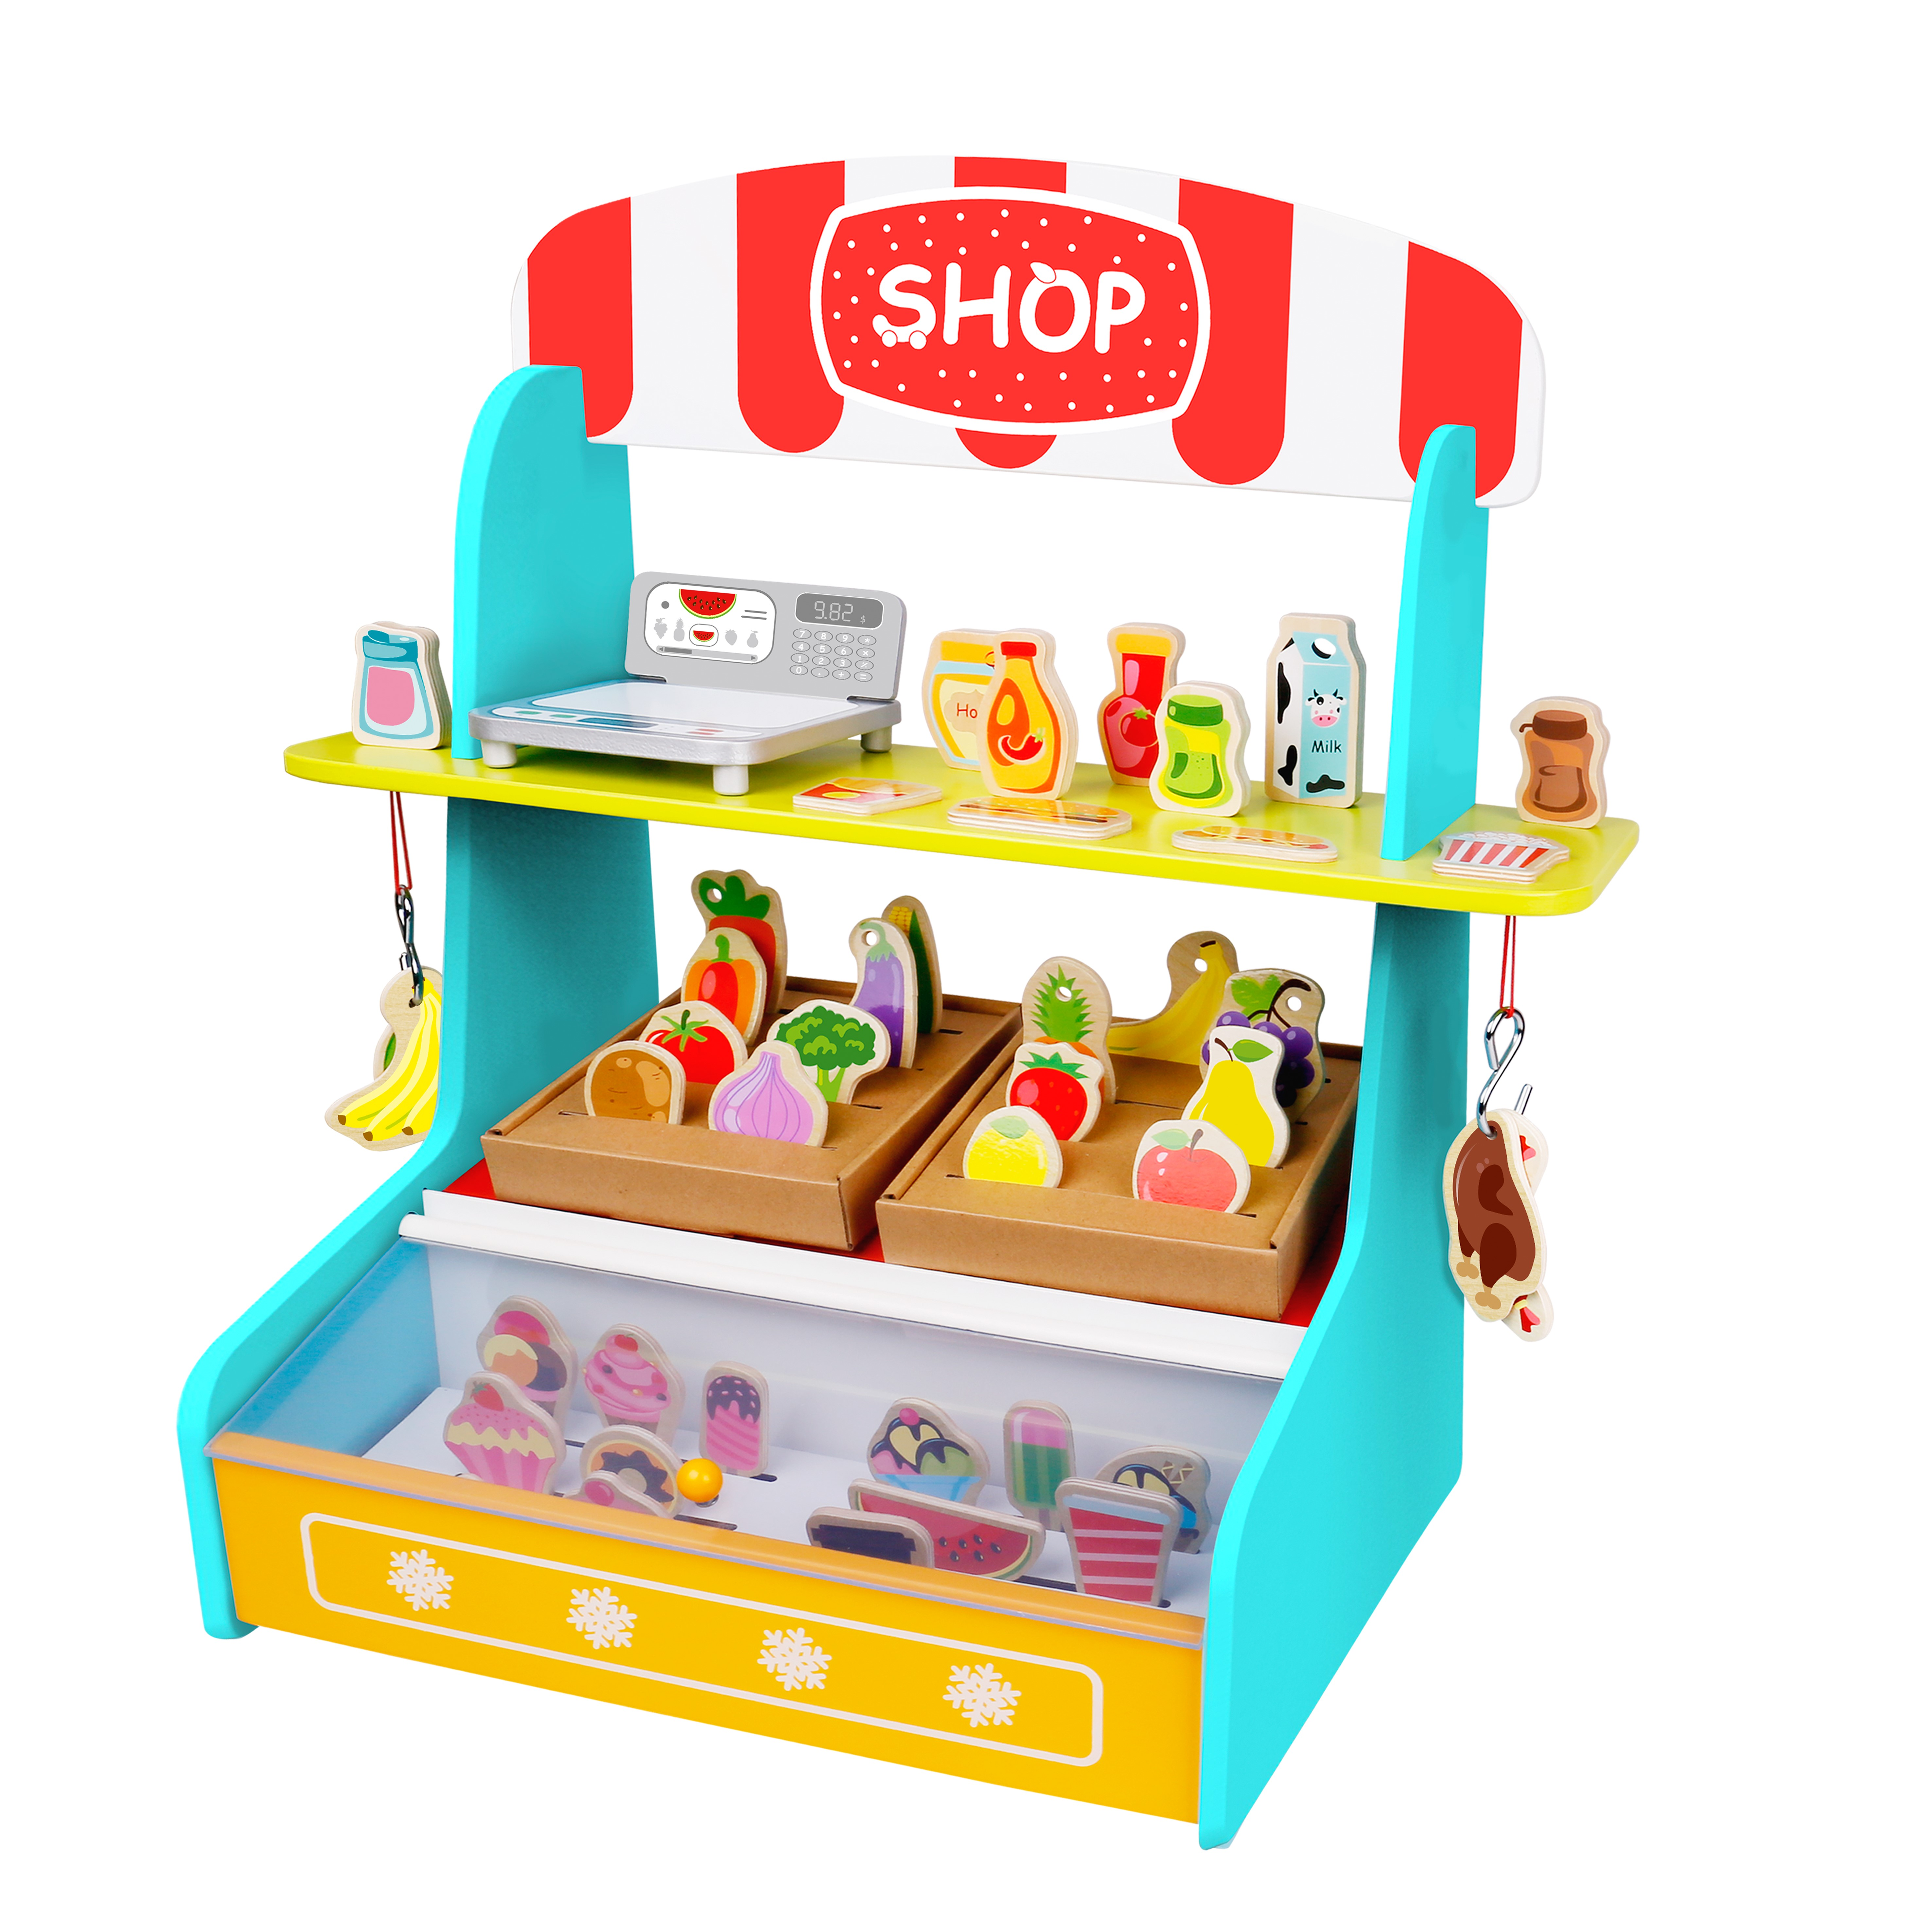 Toyster\'s My Play Shop Wooden Grocery Store Stand | Pretend Play Kitchen  Workshop for Toddler Girls and Boys | Farmers Market Lemonade Wood Toy ...